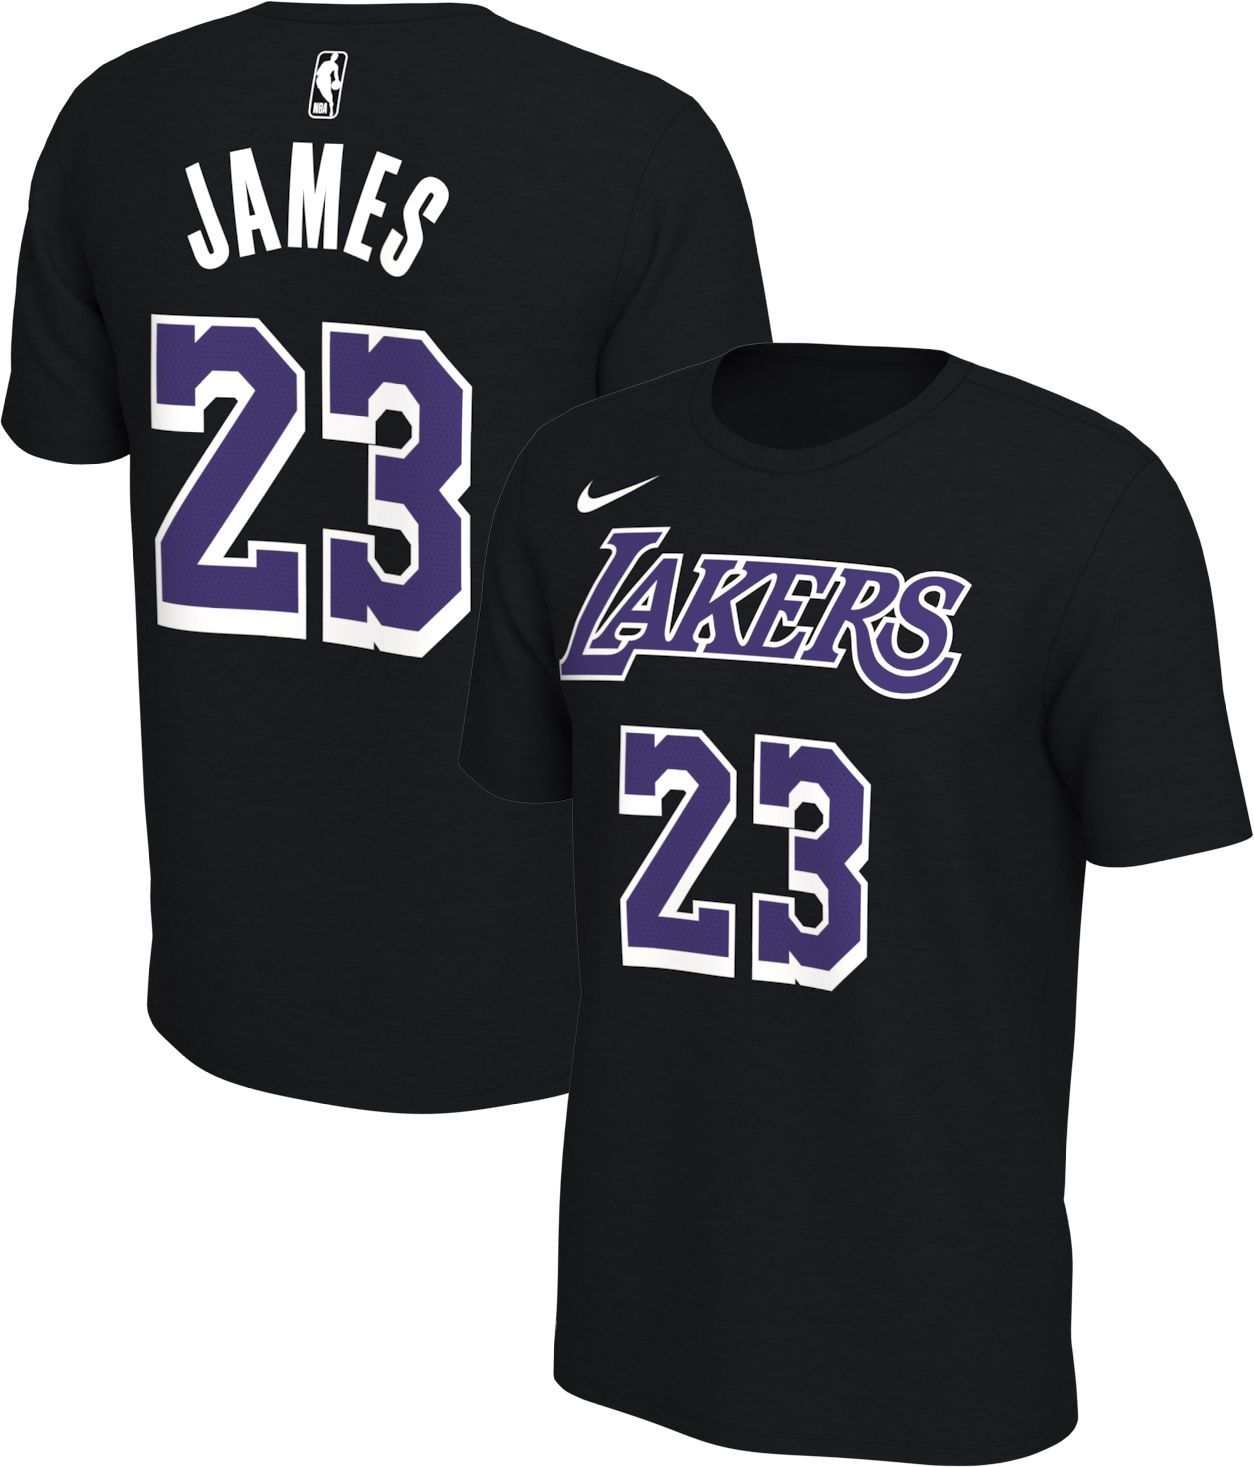 21dd7e5f8 Nike Men s Los Angeles Lakers LeBron James  23 Dri-FIT Black T-Shirt ...